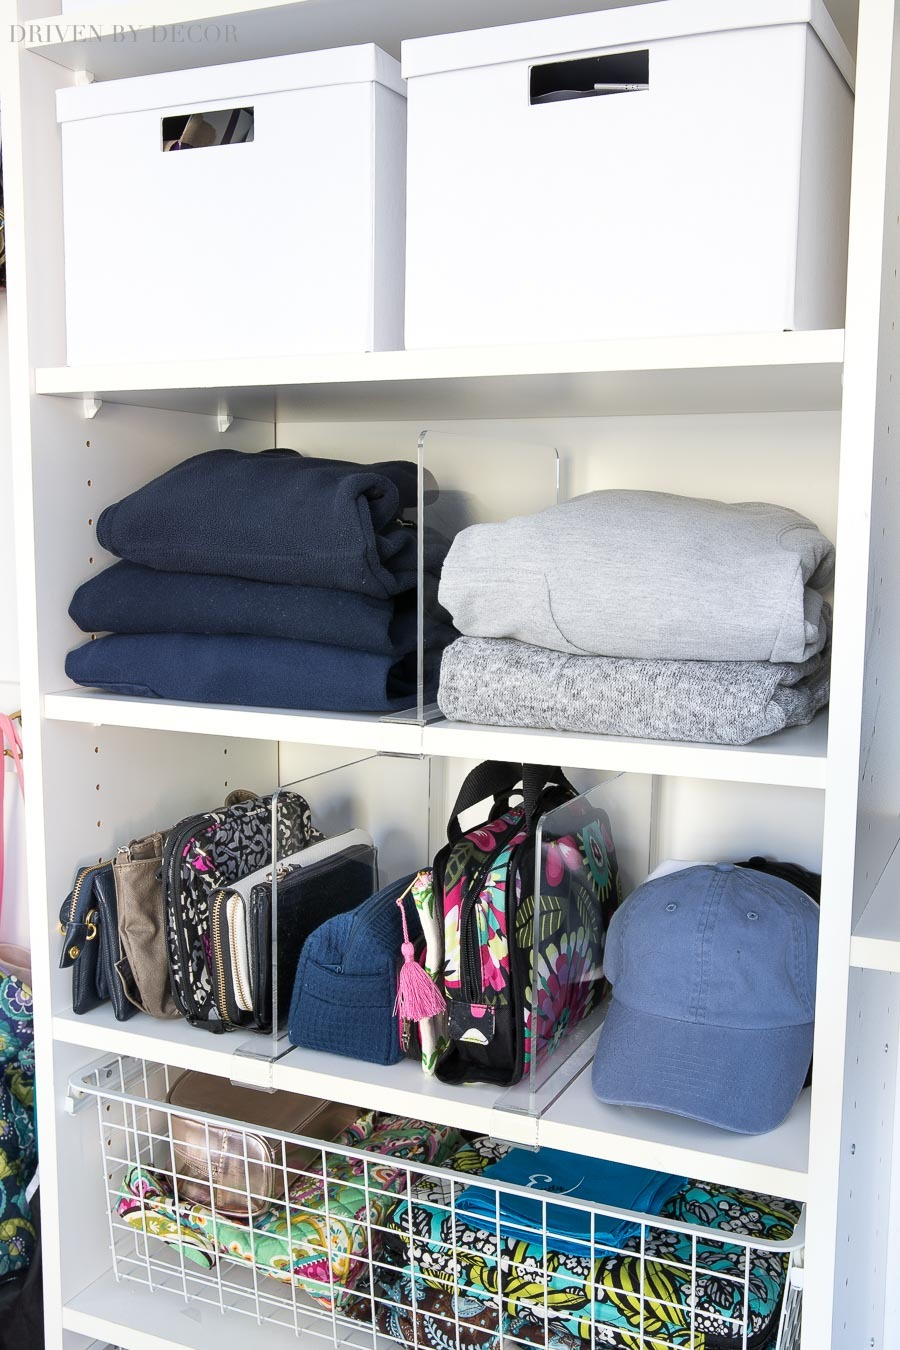 My Favorite Quick Tips For Organizing Your Home